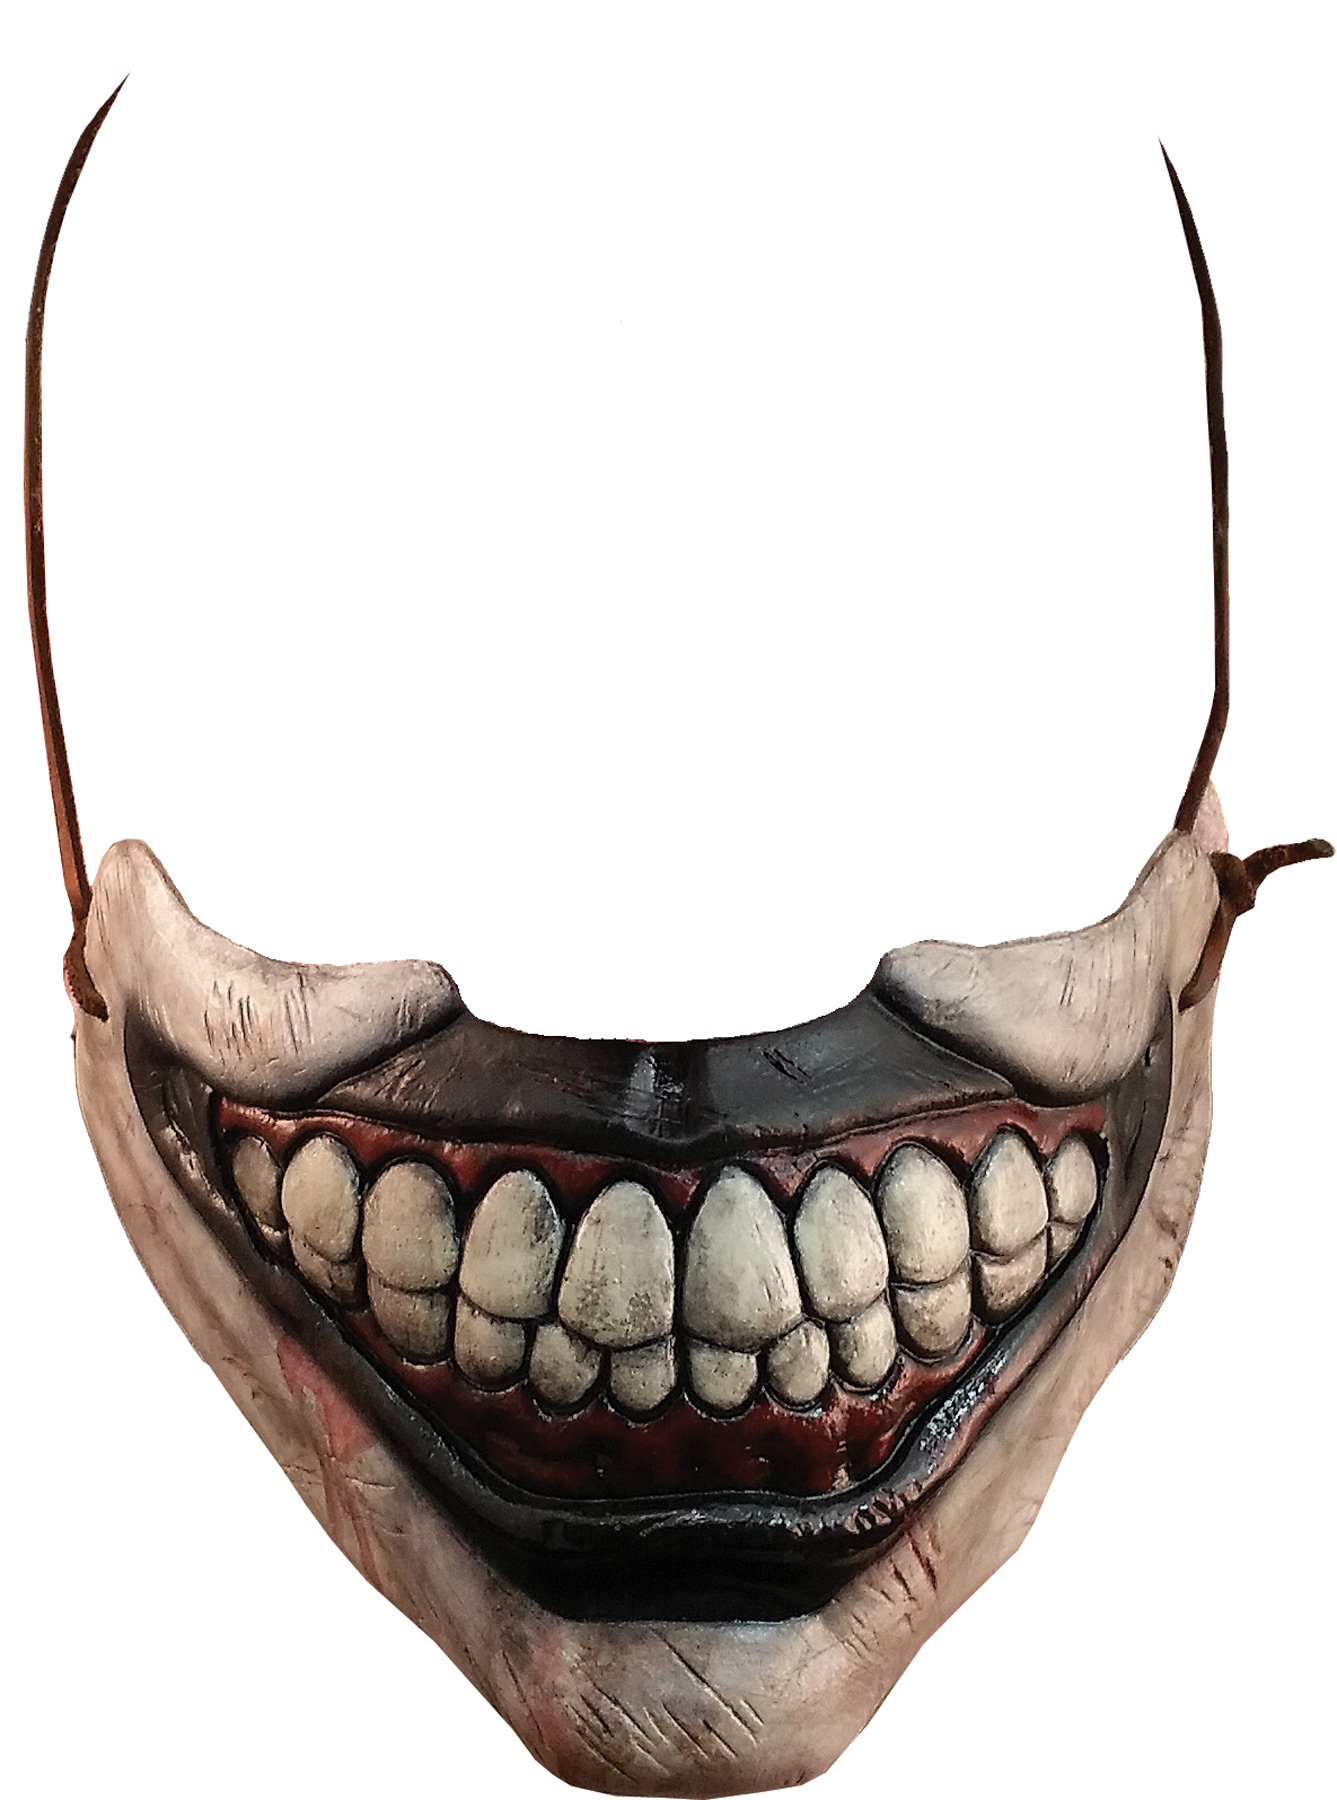 AHS  TWISTY THE CLOWN MOUTH AT